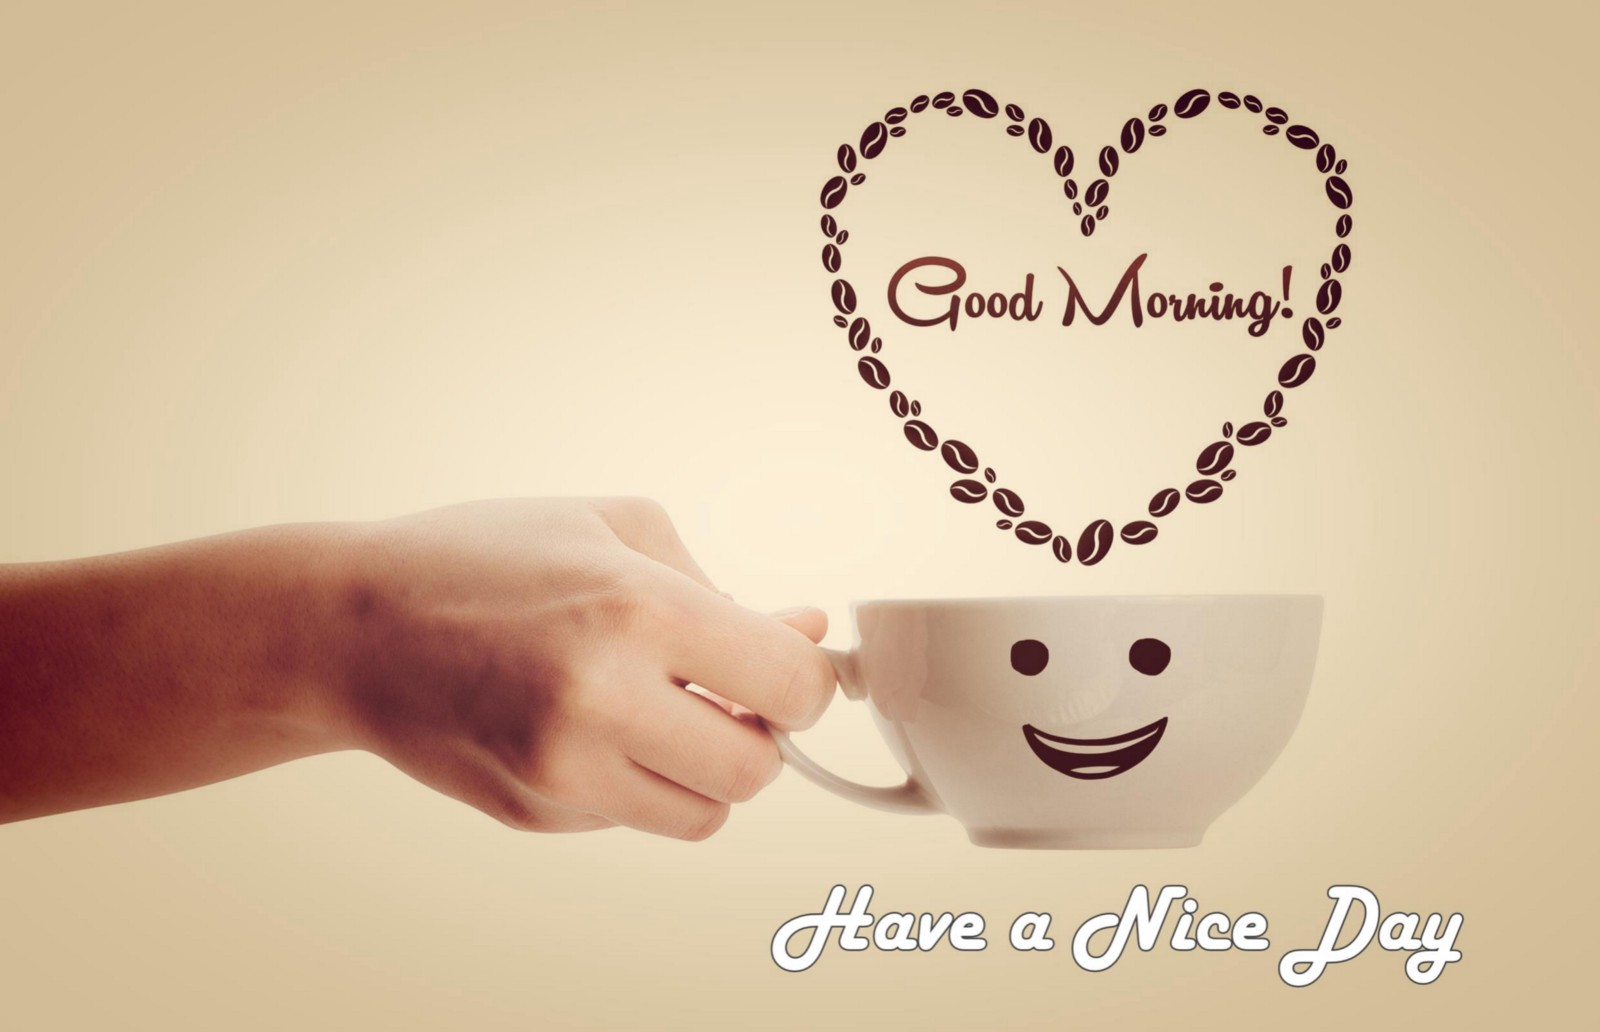 30 good morning funny quotes sayings mean morning hace a nice day